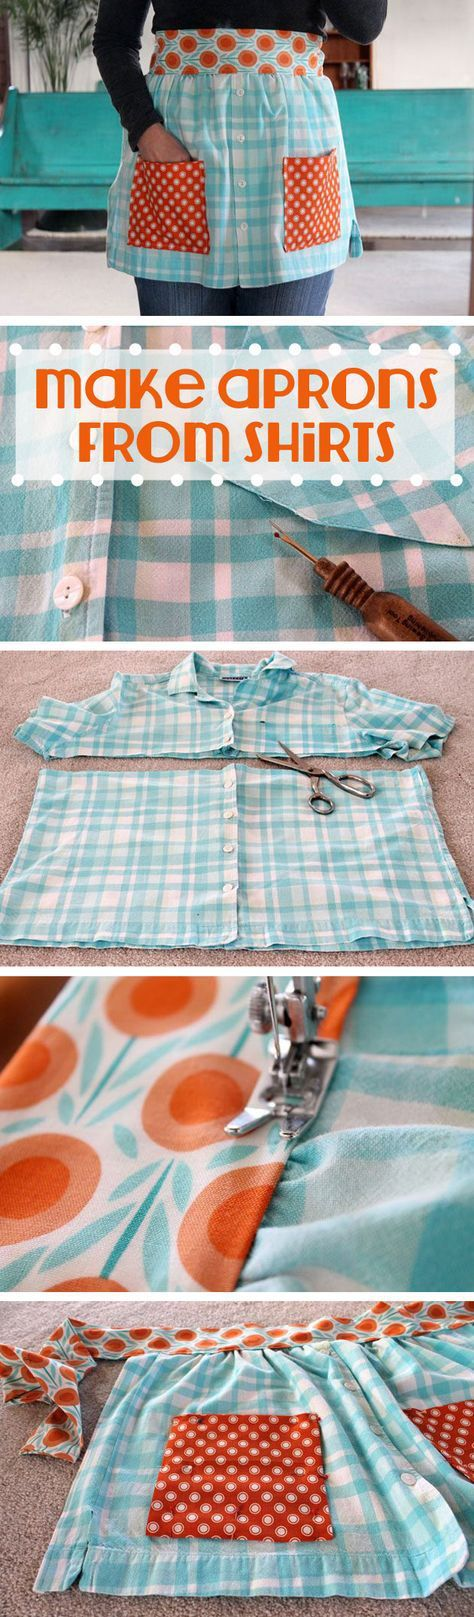 sellable craft ideas 9018 best diy sewing projects images on 2903